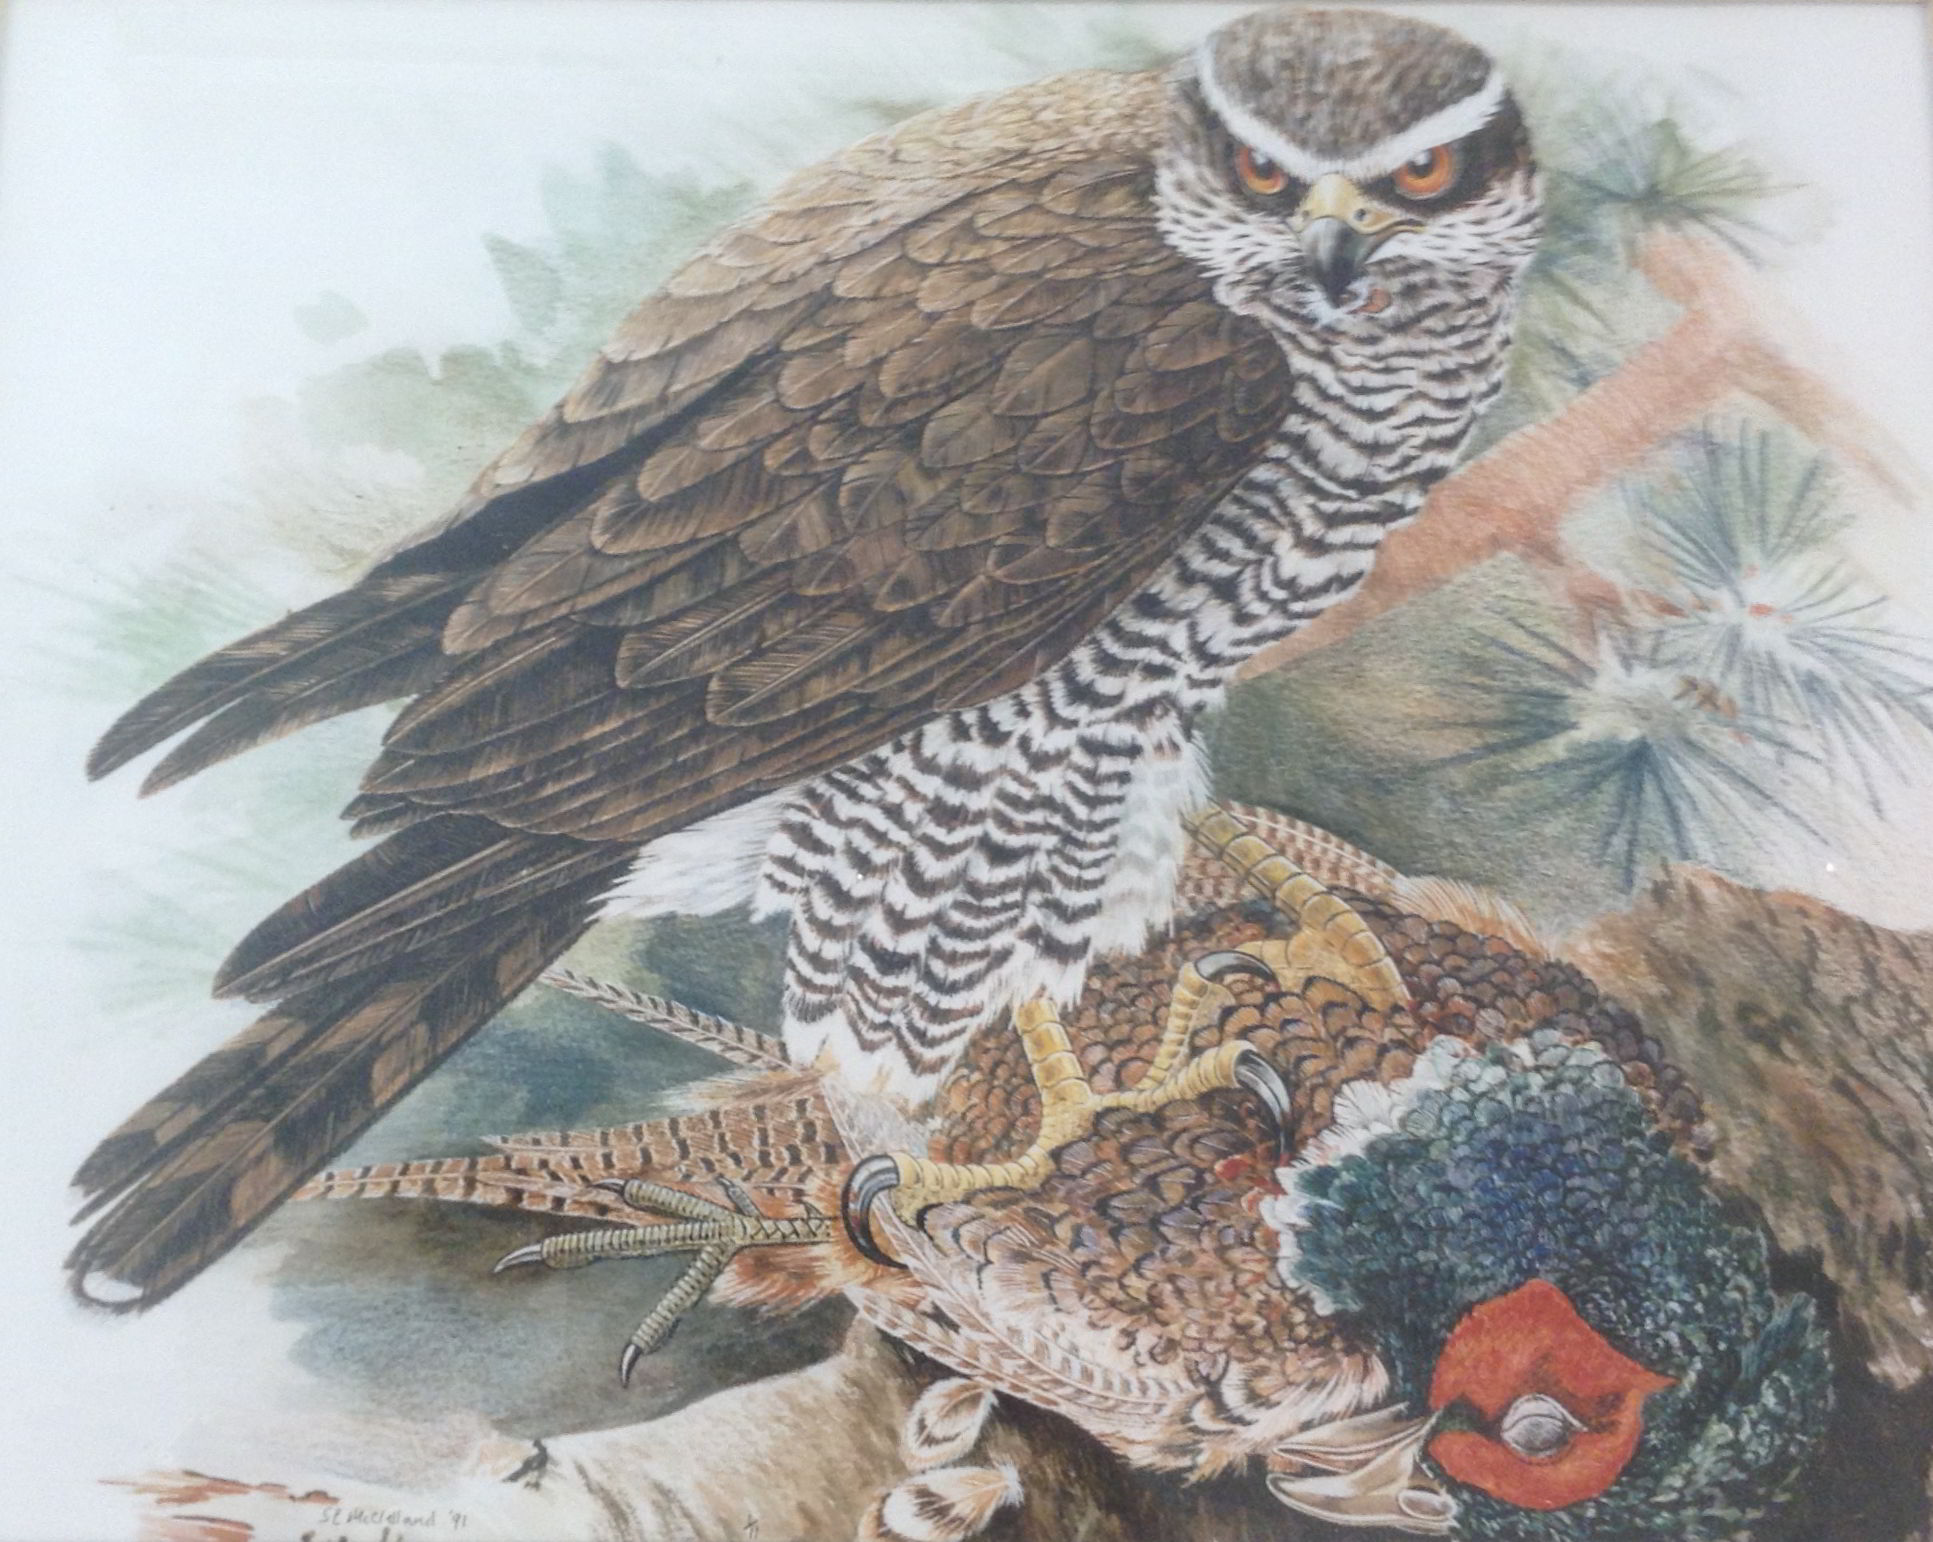 A watercolour painting of a bird or prey standing on a dead pheasant